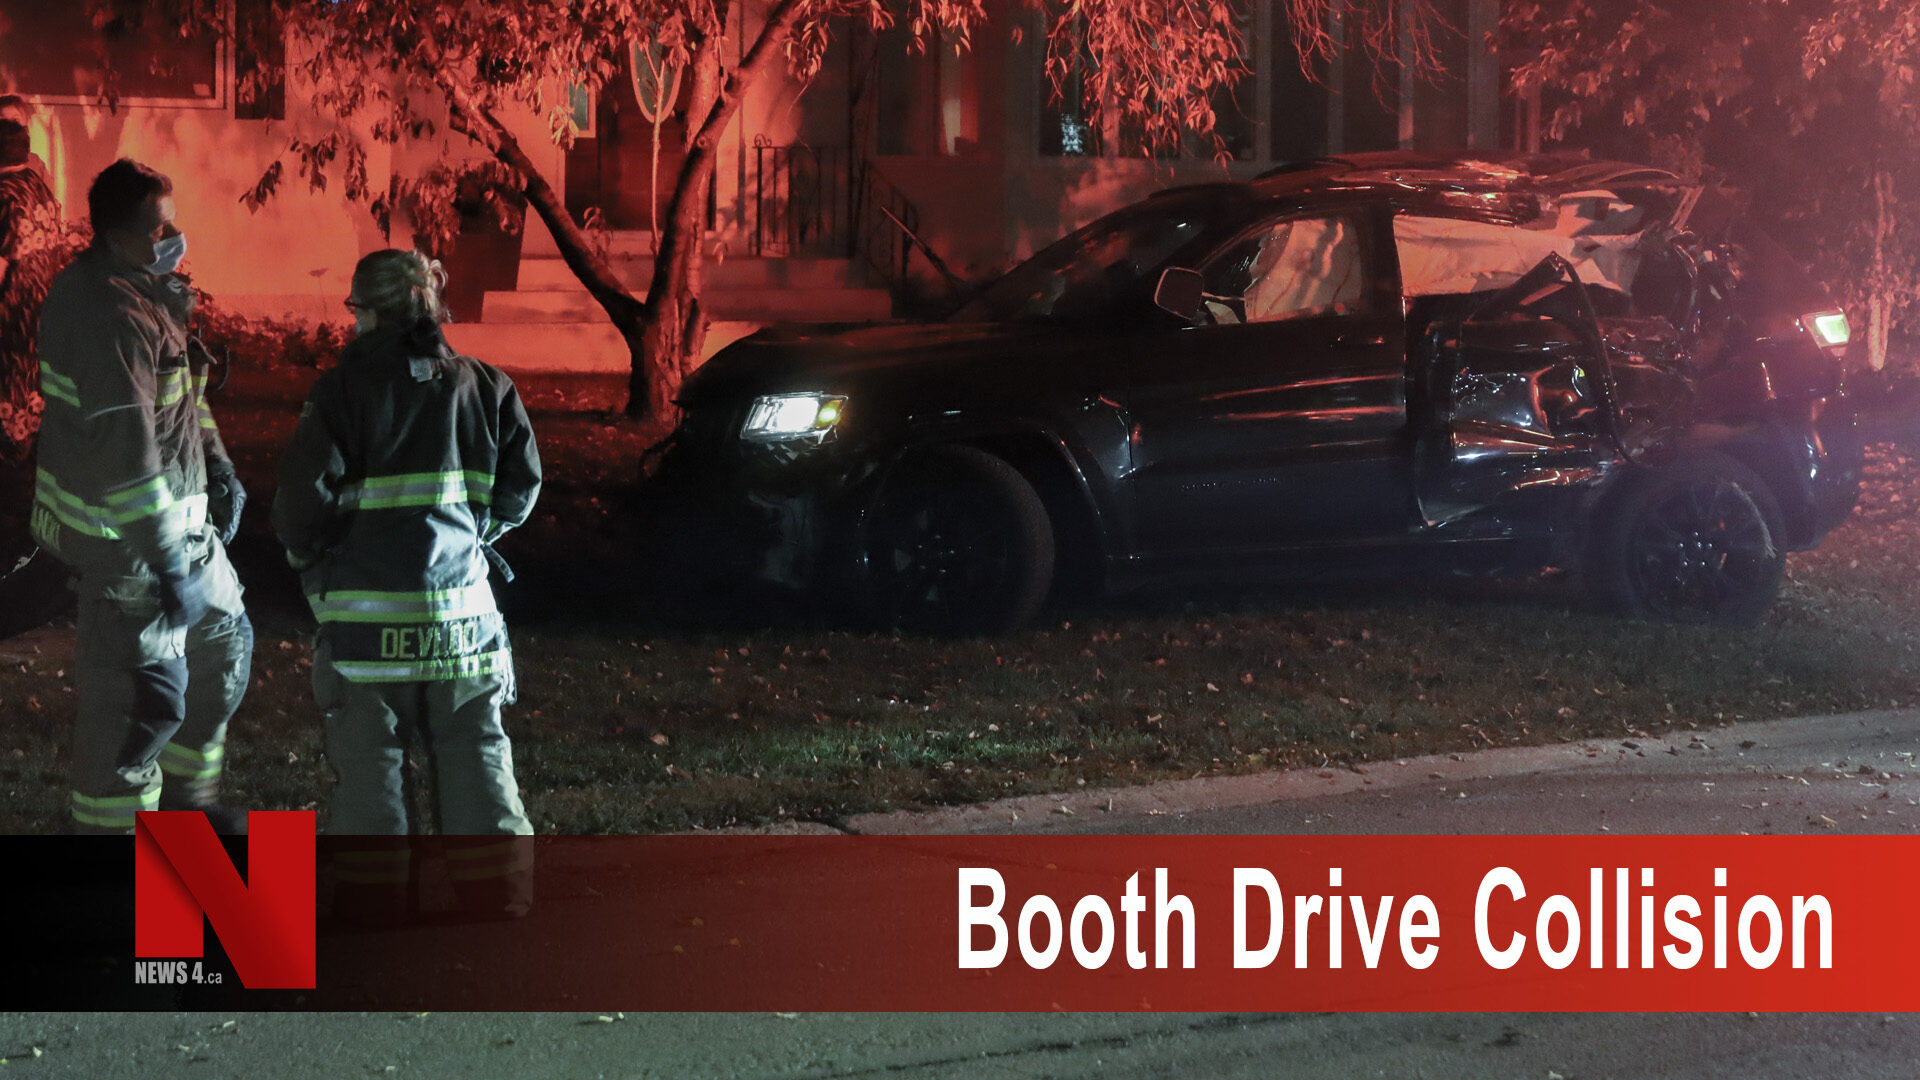 Booth Drive Collision